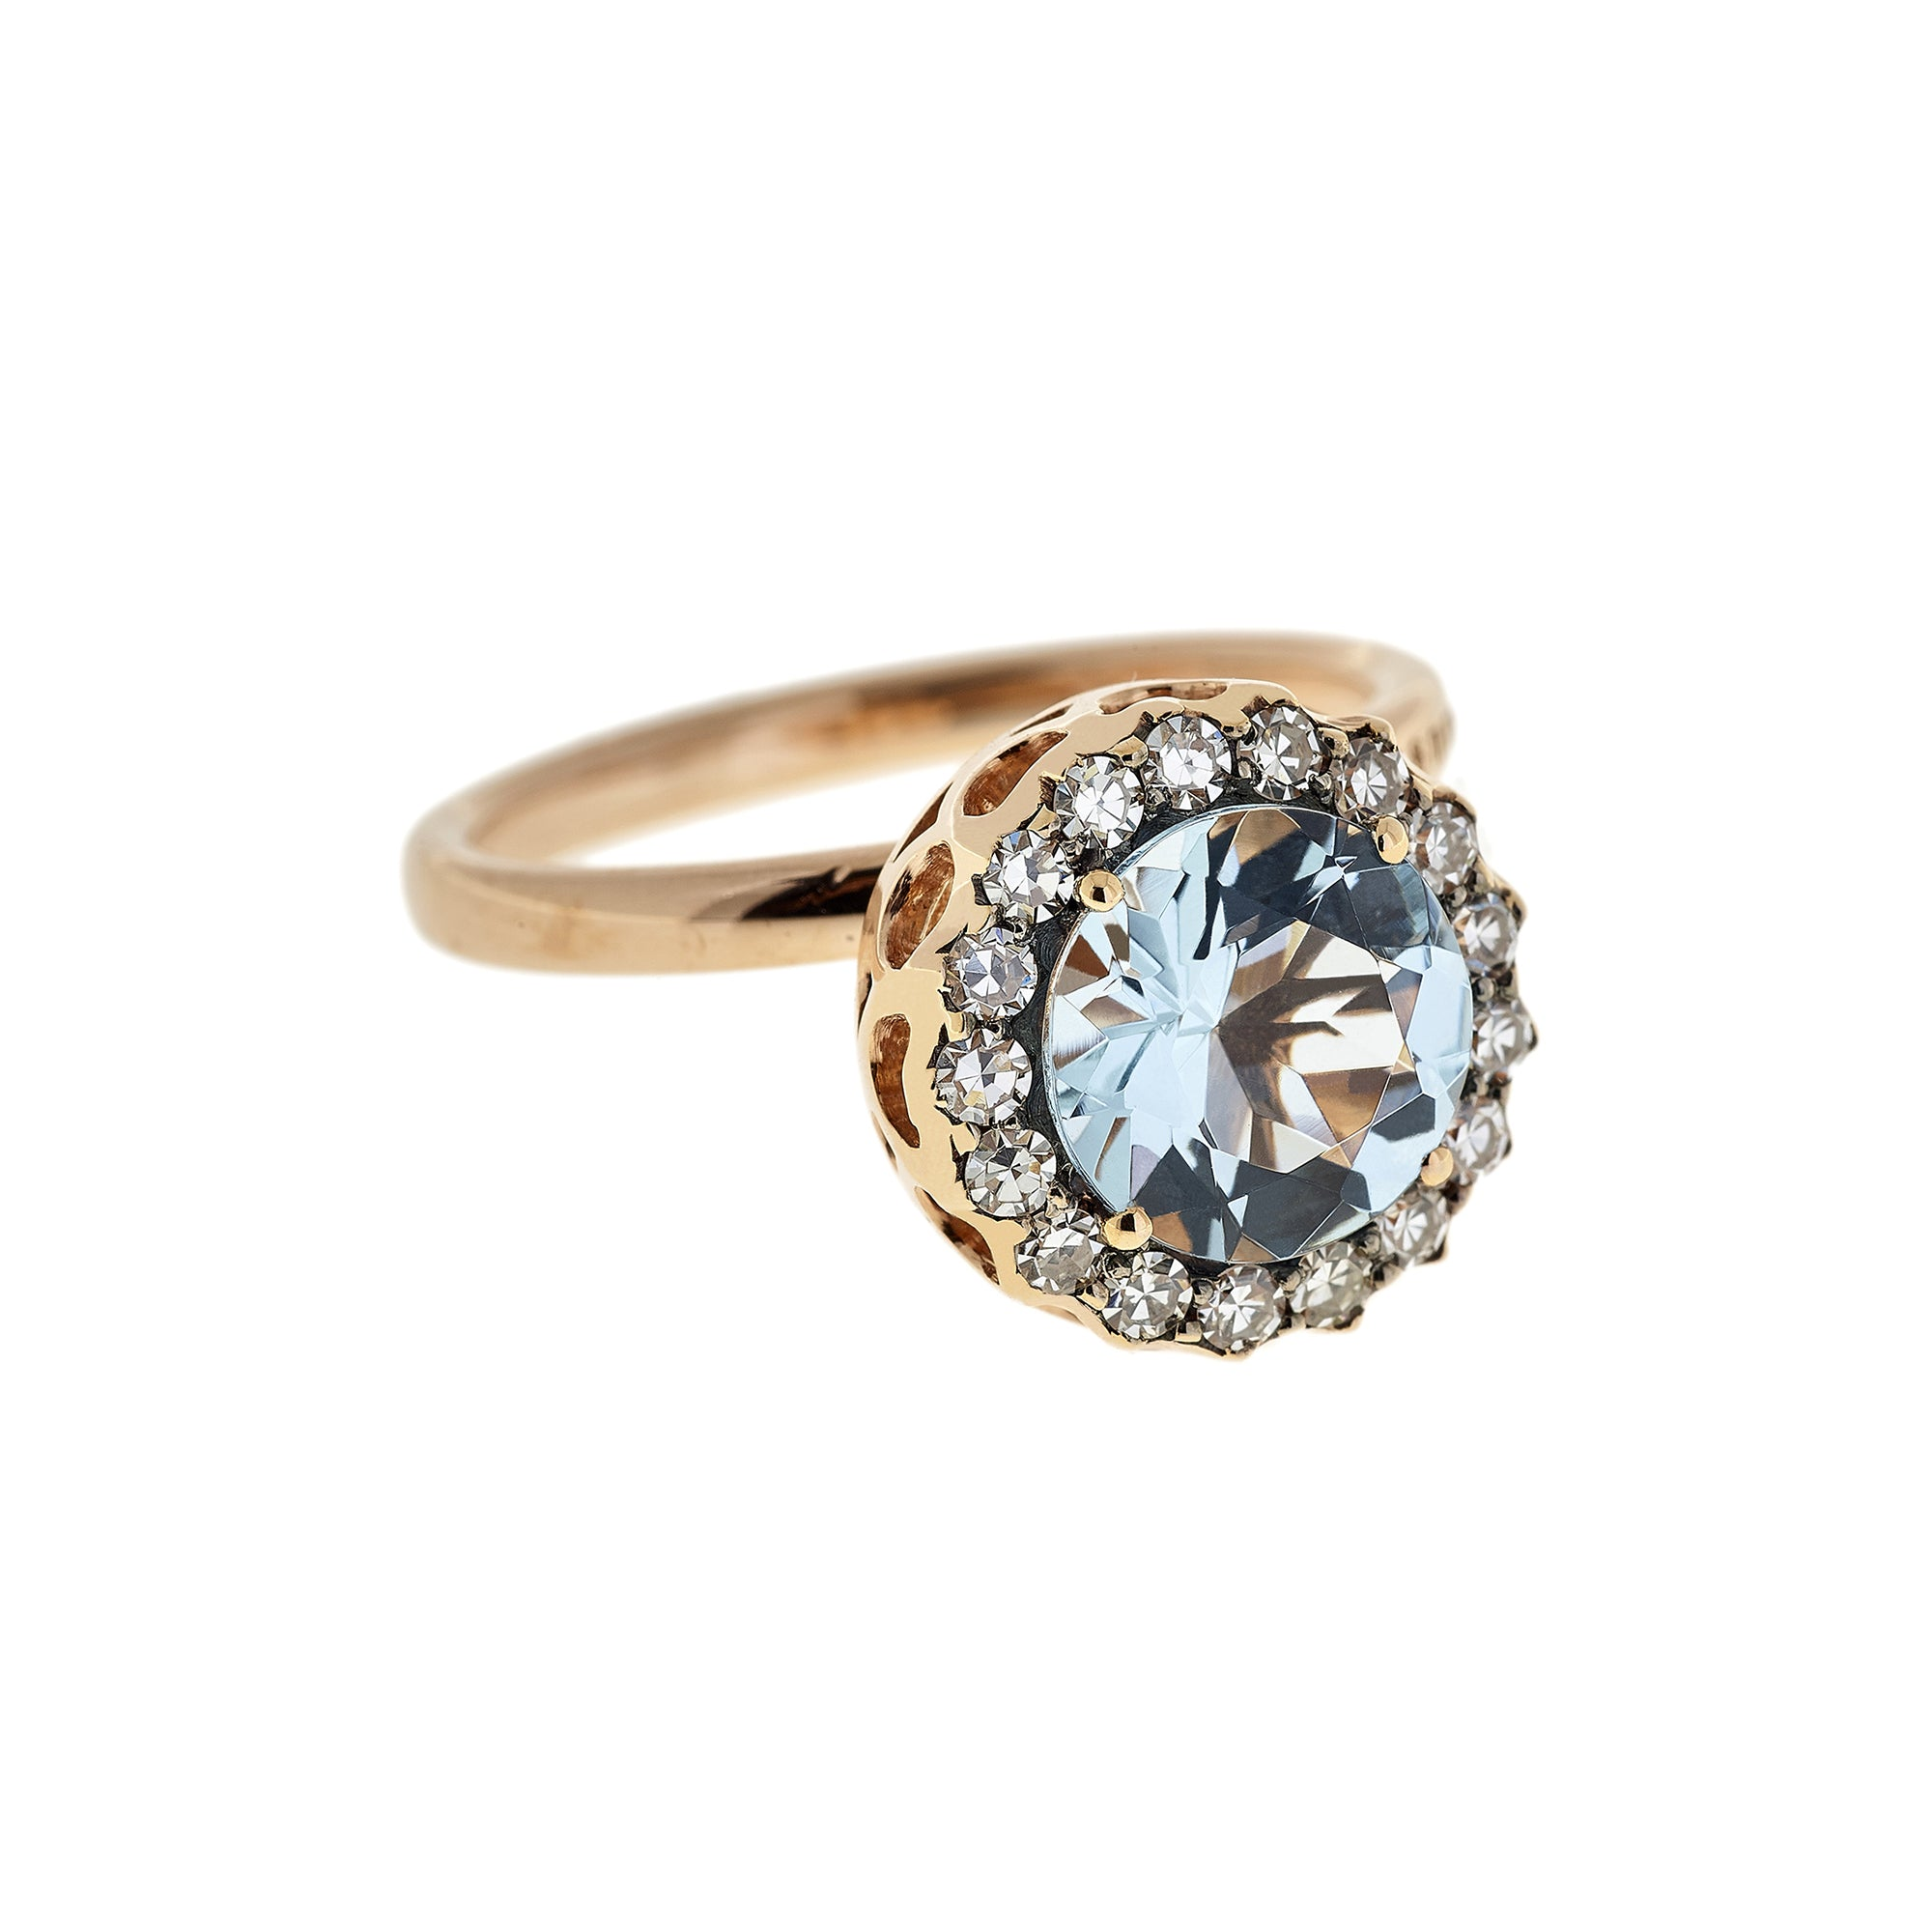 Large Aquamarine Ring by Selim Mouzannar for Broken English Jewelry